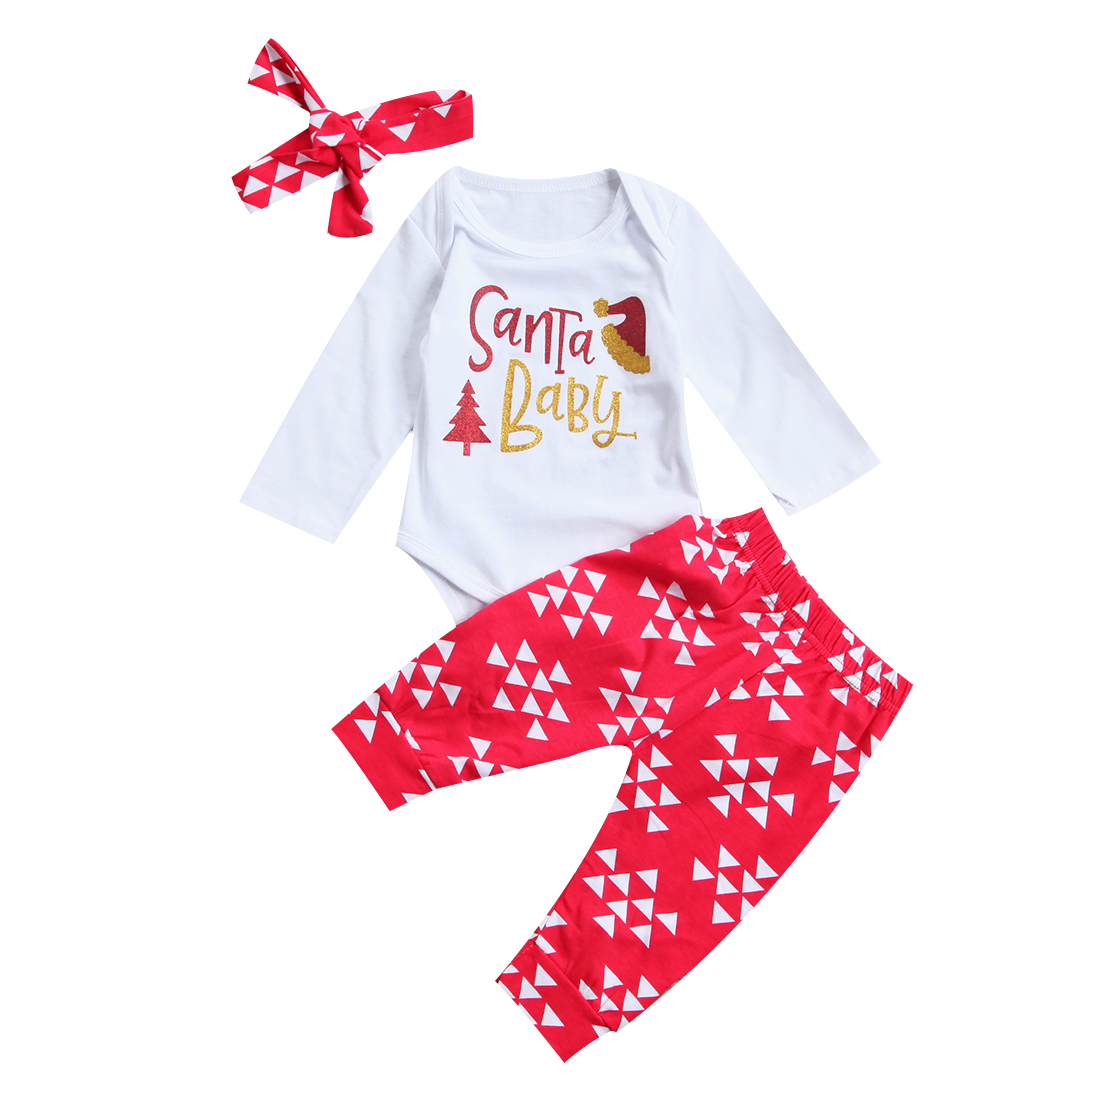 Baby Girl Boy Christmas Clothes Set Long Sleeve Sweet Newborn Baby Boys Girls Tops Bodysuit Pants 3Pcs Outfits Set Clothes 0 24m newborn infant baby boy girl clothes set romper bodysuit tops rainbow long pants hat 3pcs toddler winter fall outfits